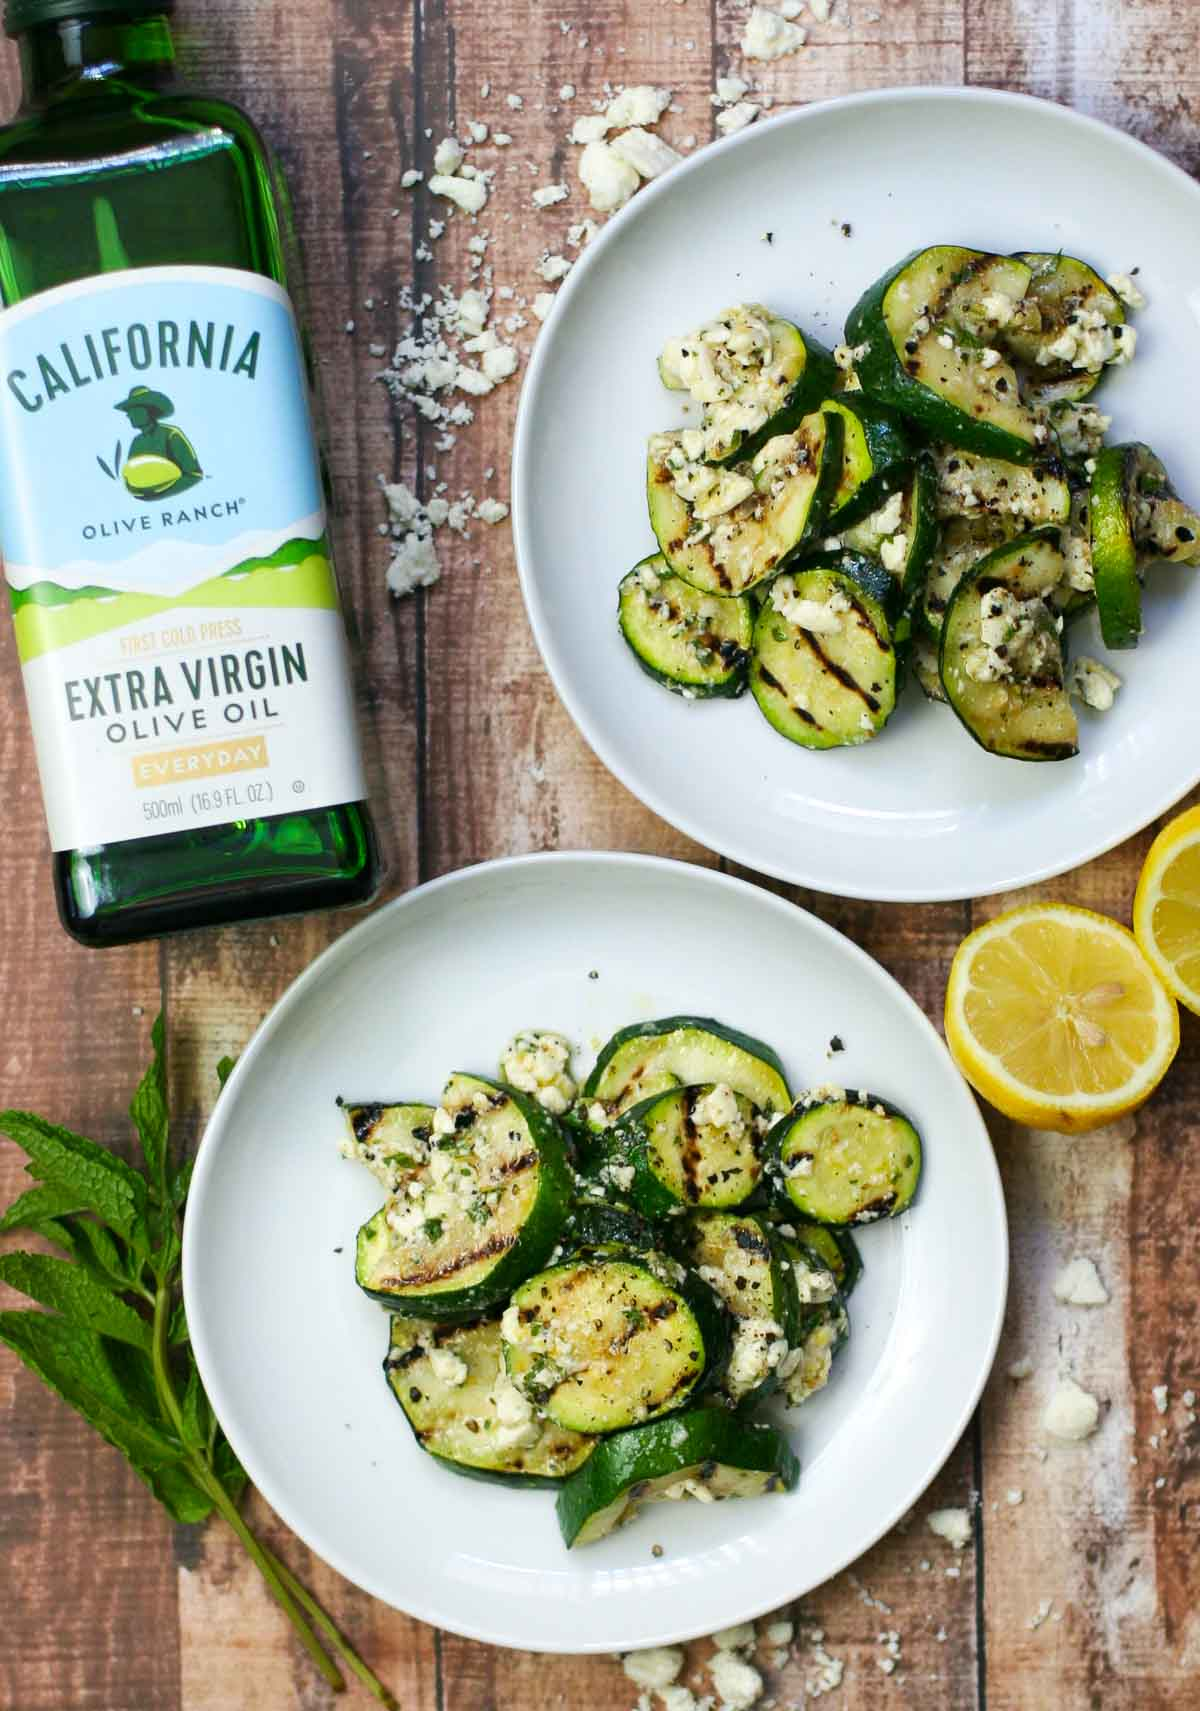 Grilled Zucchini with Mint, Lemon, and Feta - Erica Julson